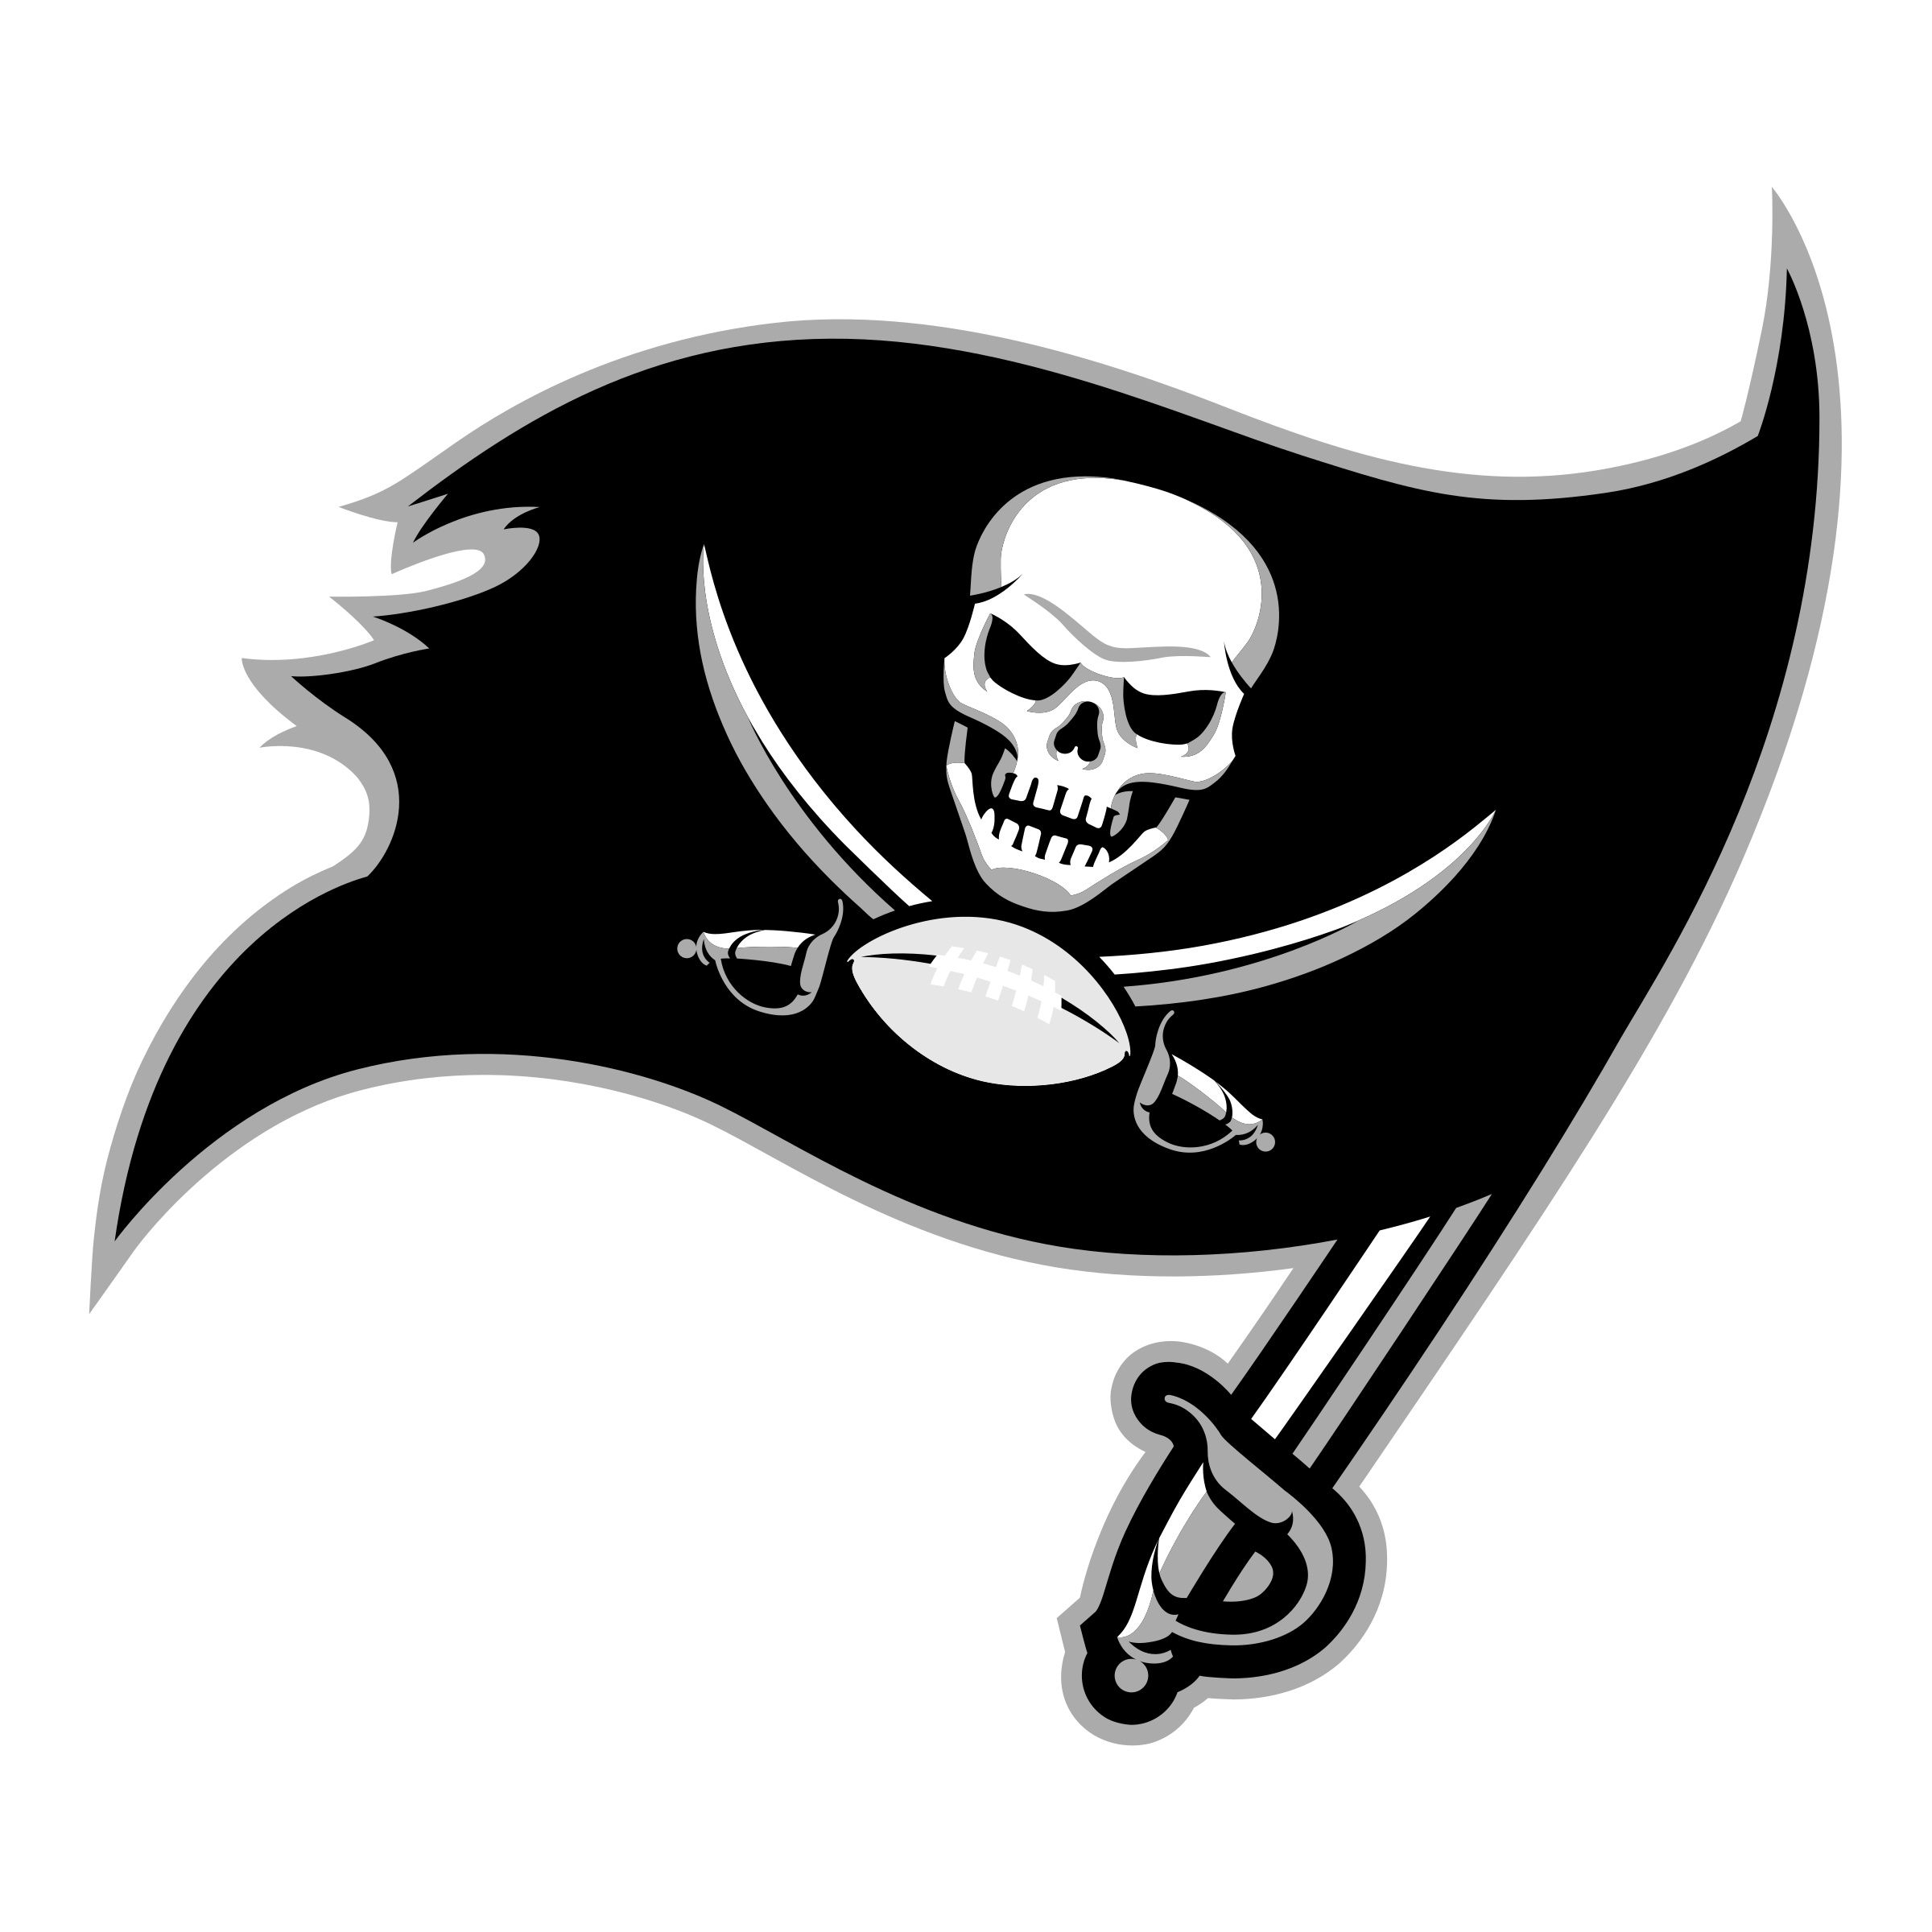 tampa bay buccaneers logo png transparent svg vector freebie supply tampa bay buccaneers logo png